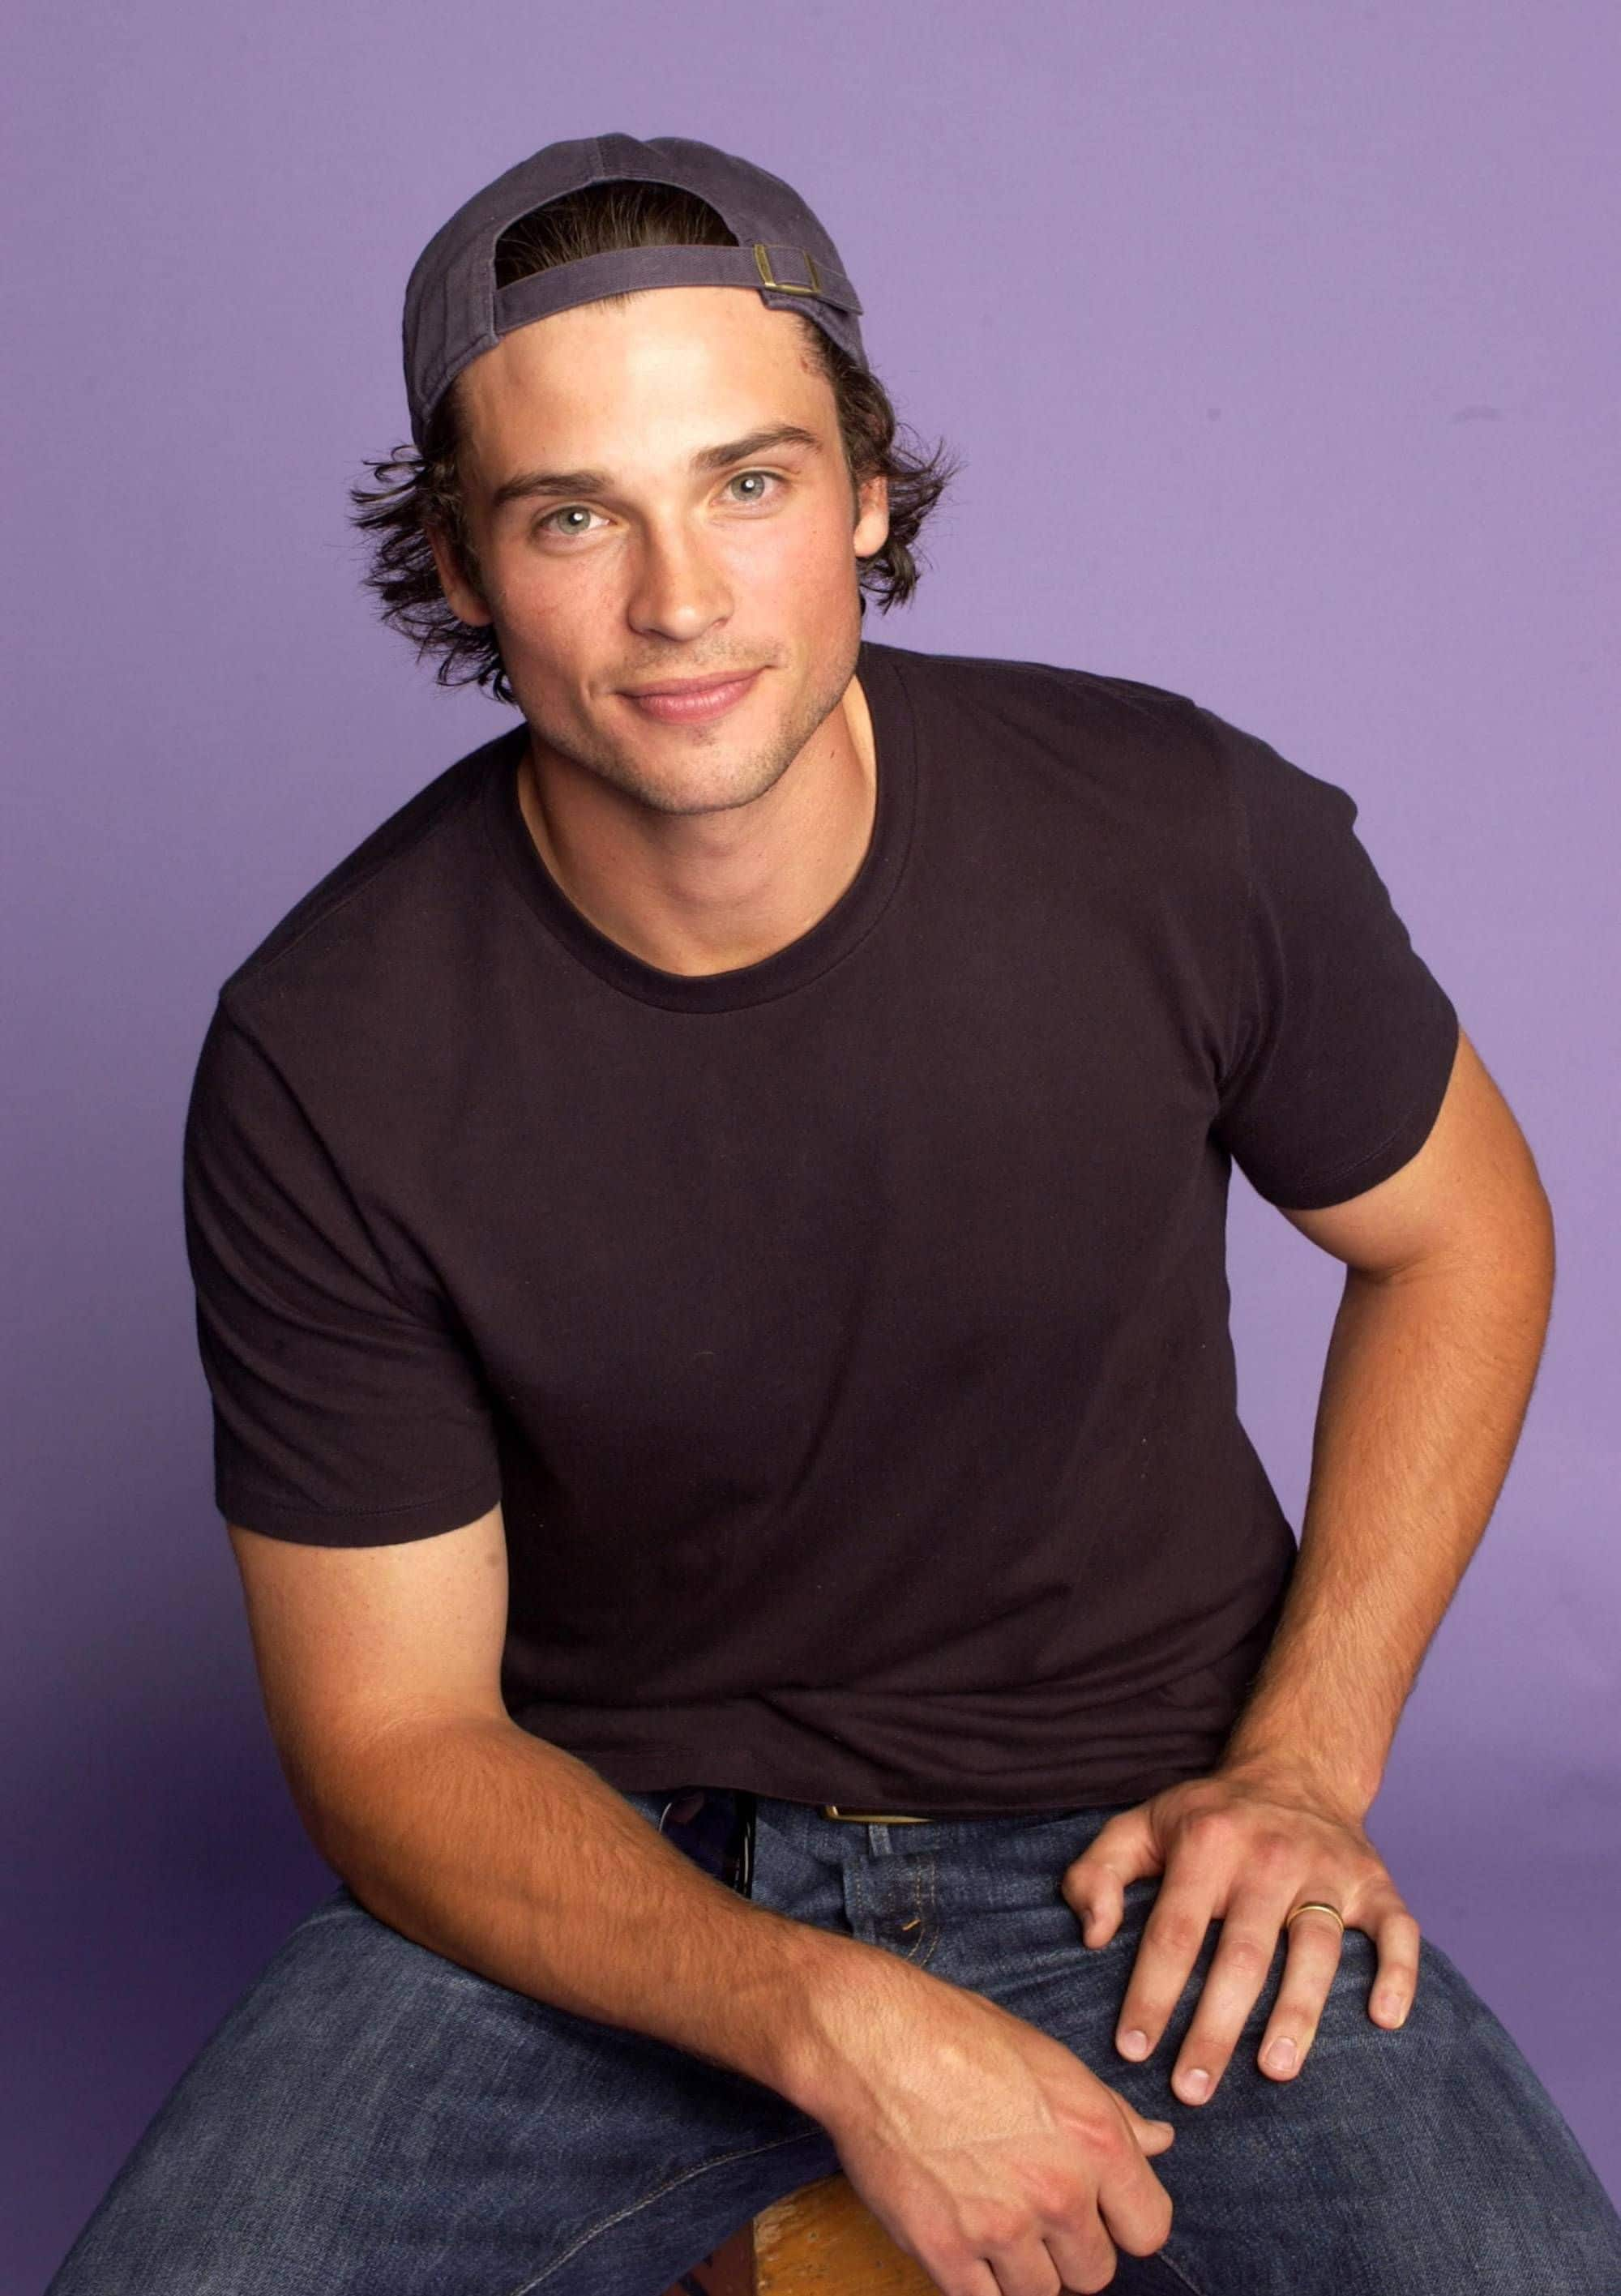 Tom Welling American Actor, Director, Producer, Model